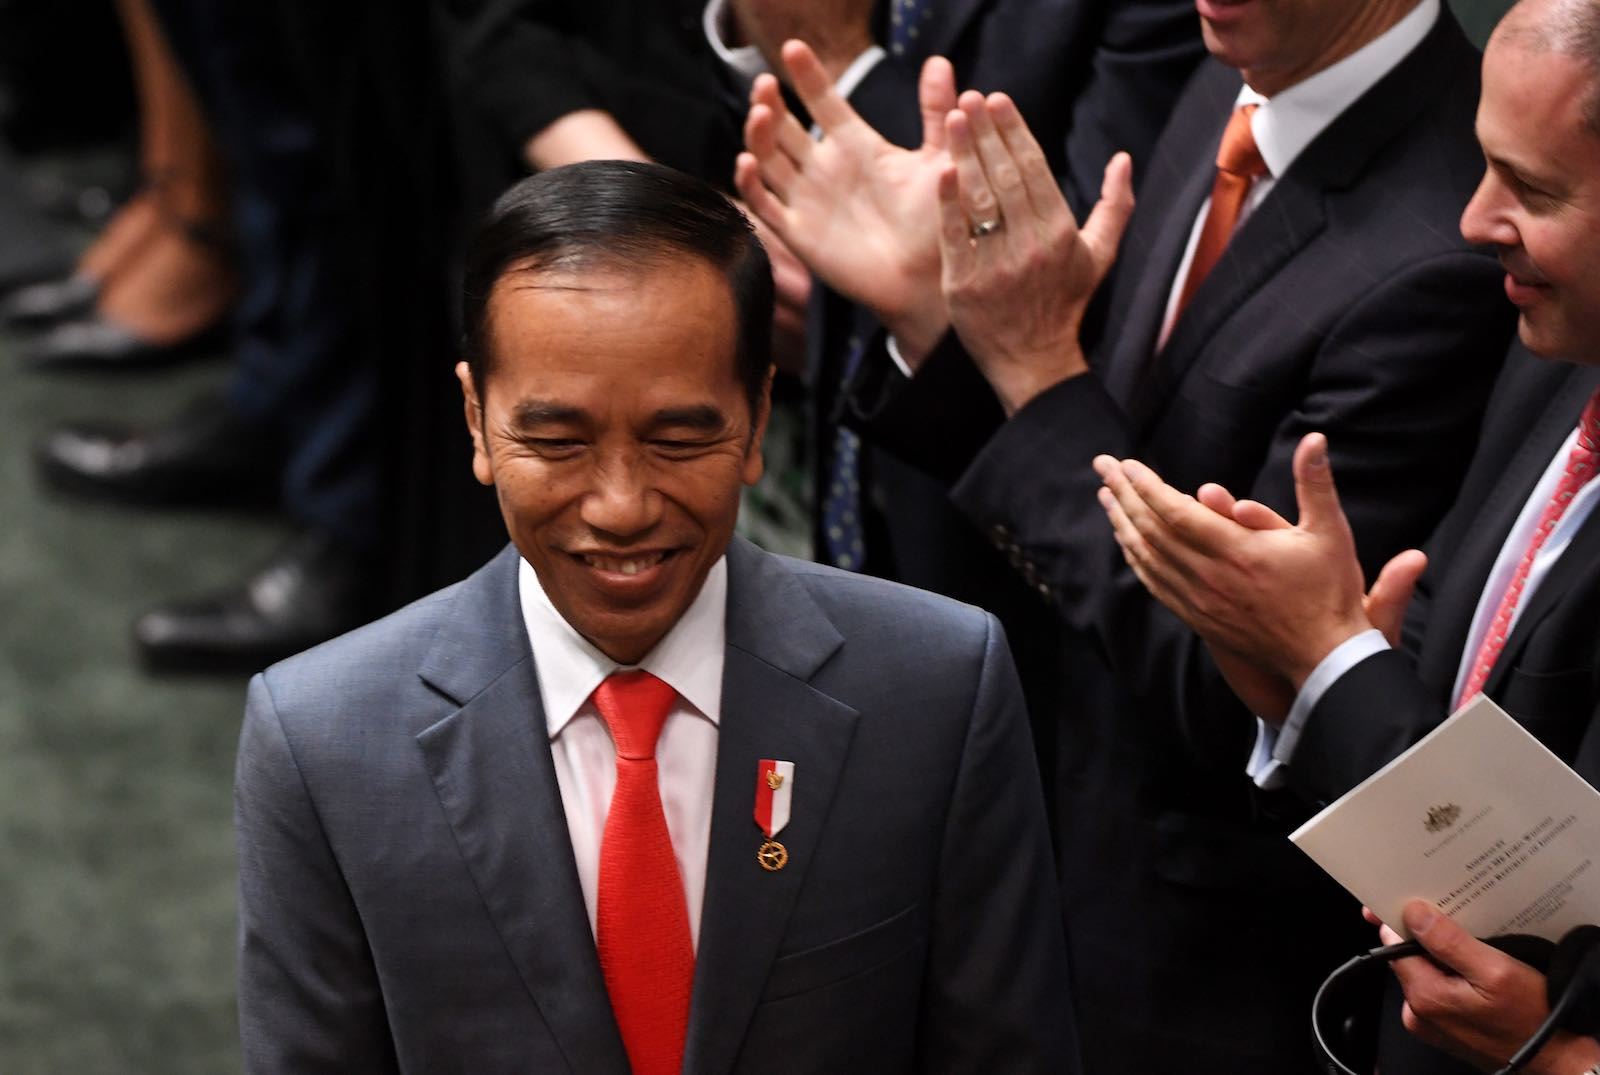 Welcoming Joko Widodo to the floor of the House of Representatives in the Australian parliament (Tracey Nearmy/Getty Images)